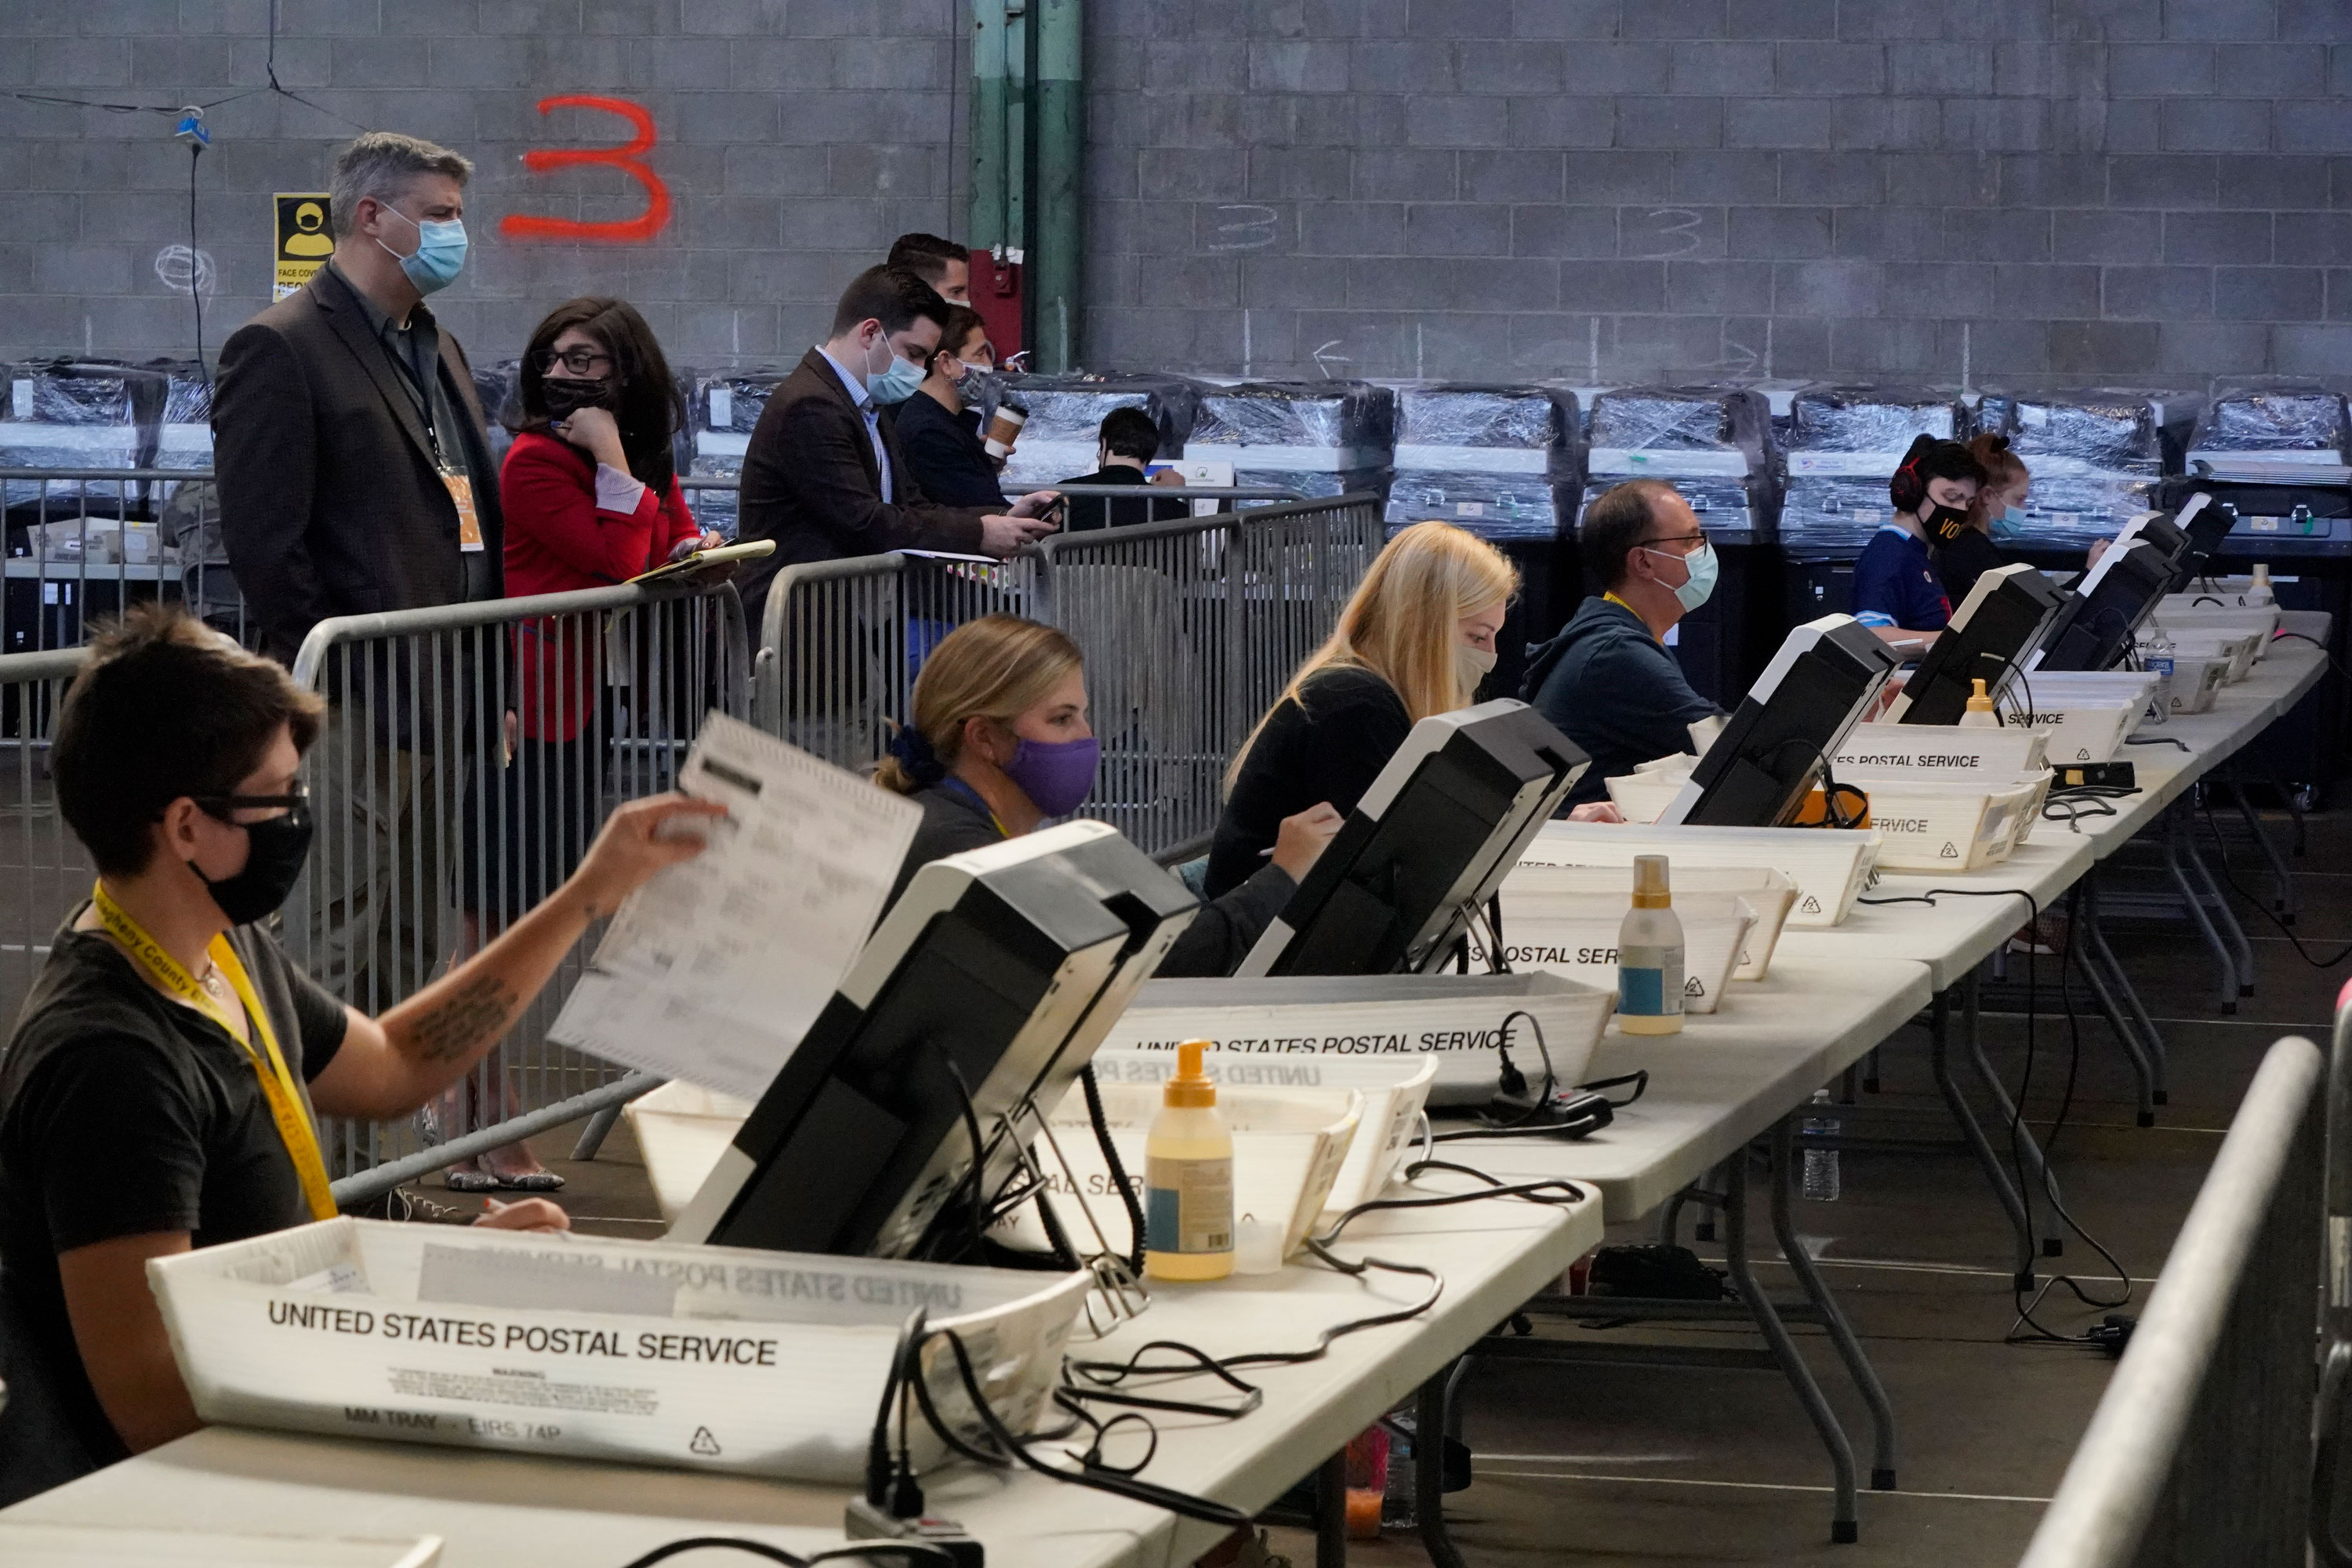 Election office workers process ballots at the Allegheny County elections returns warehouse in Pittsburgh, Pennsylvania, on November 6.